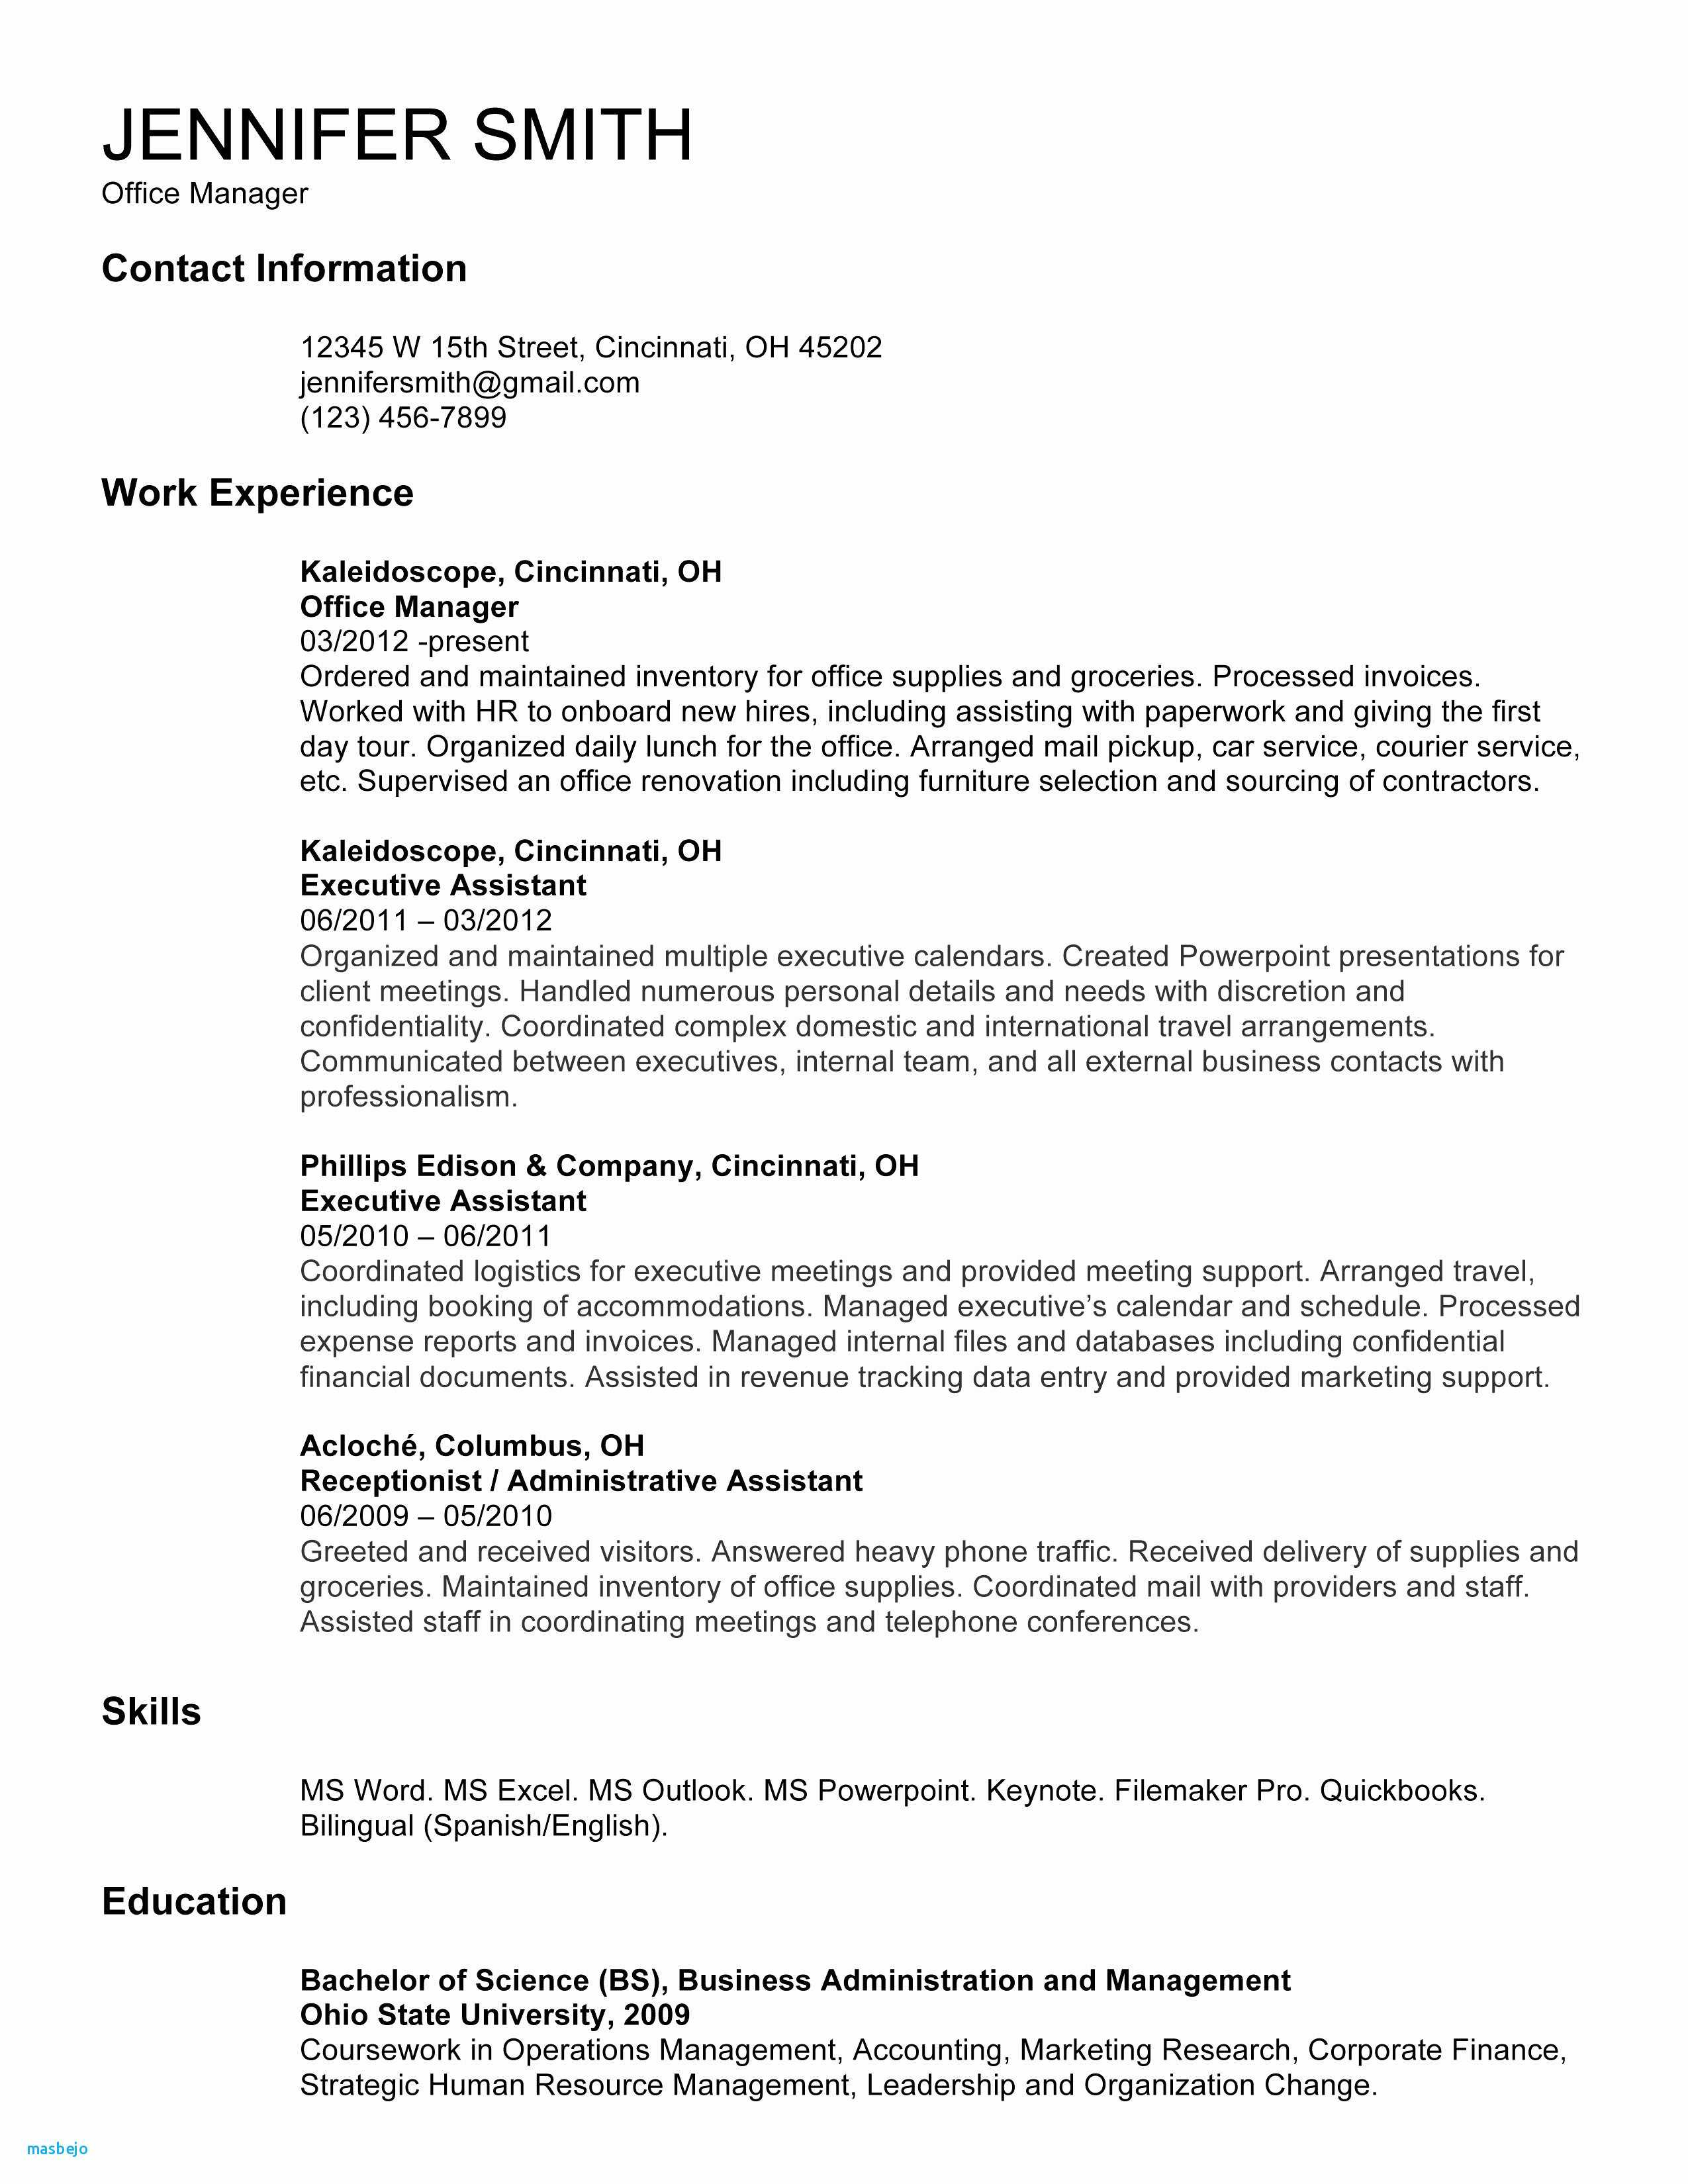 Office Manager Resume - Inspirational Sample Fice Manager Resume